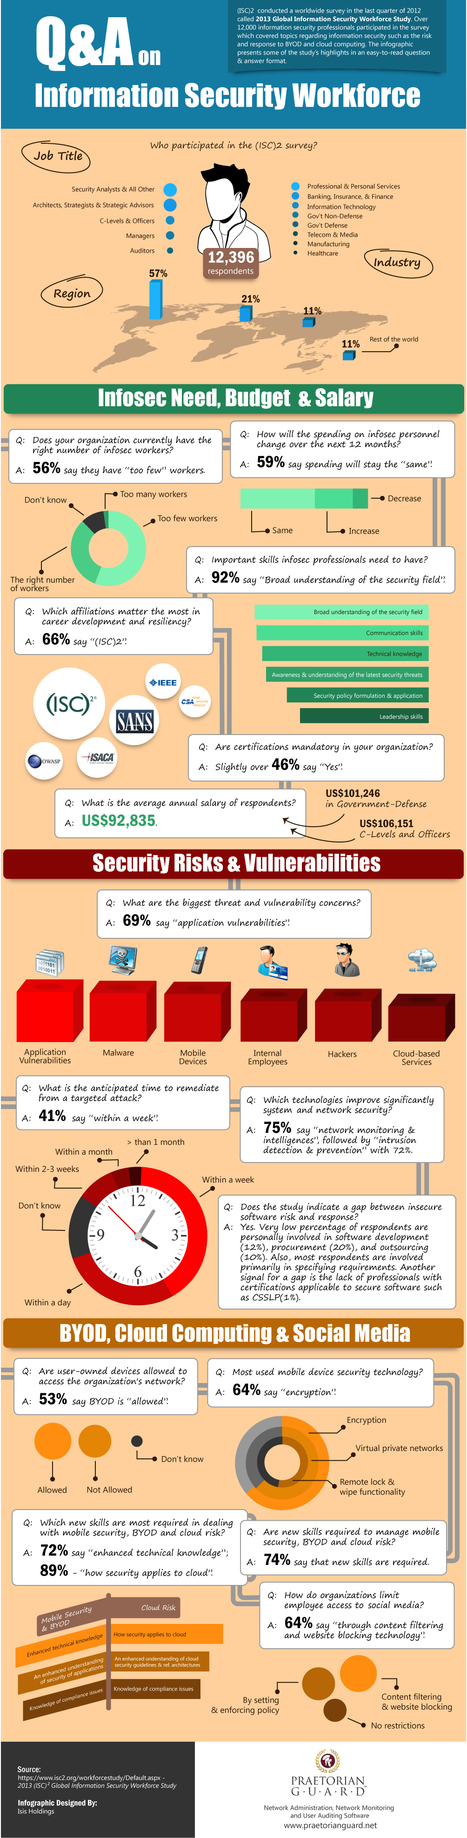 Cloud Infographic: Information Security Workforce - CloudTweaks | Geek Topics | Scoop.it